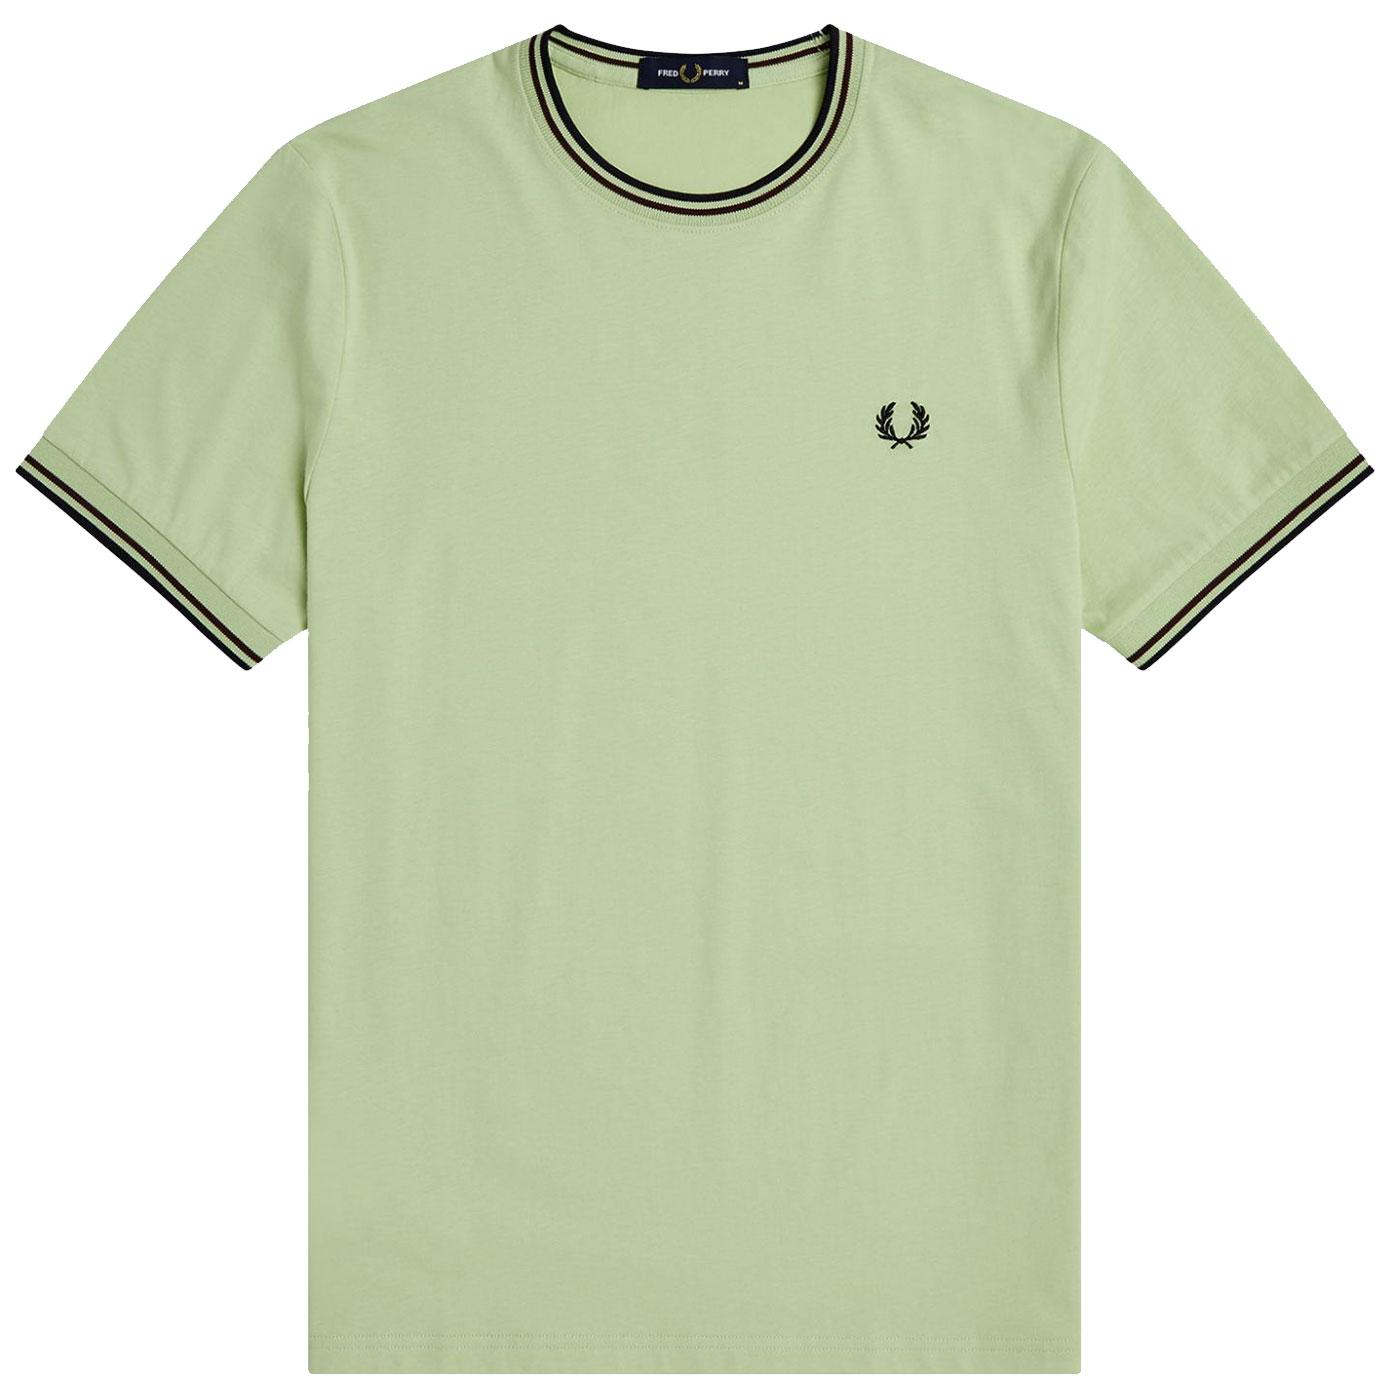 FRED PERRY M1588 Retro Twin Tipped Tee (Willow)